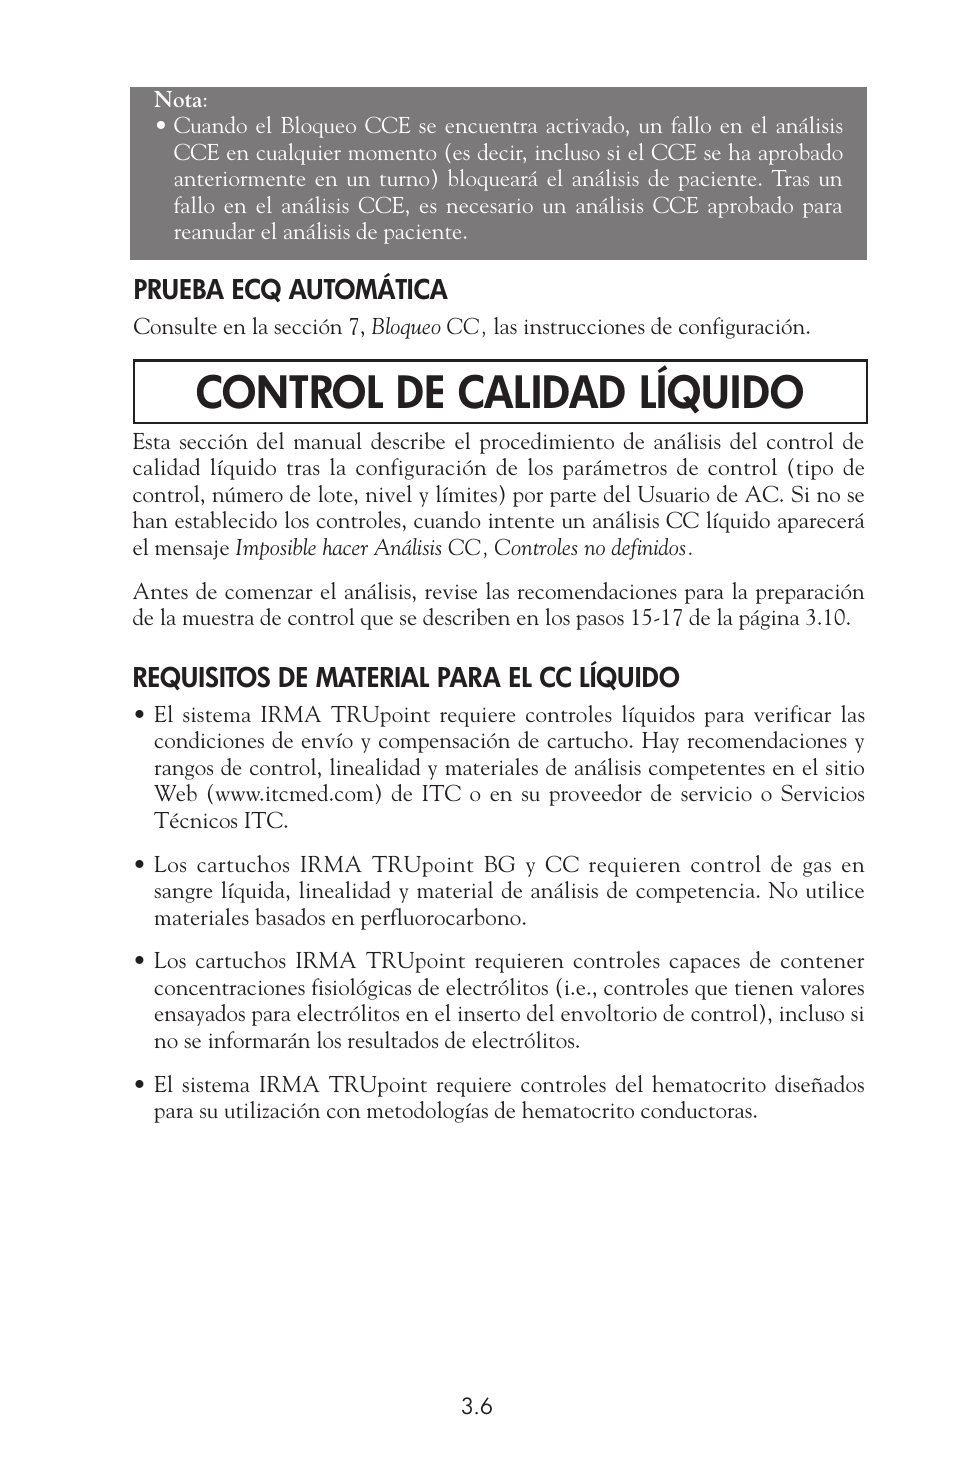 Control de calidad líquido | ITC IRMA TruPoint Blood Analysis ...